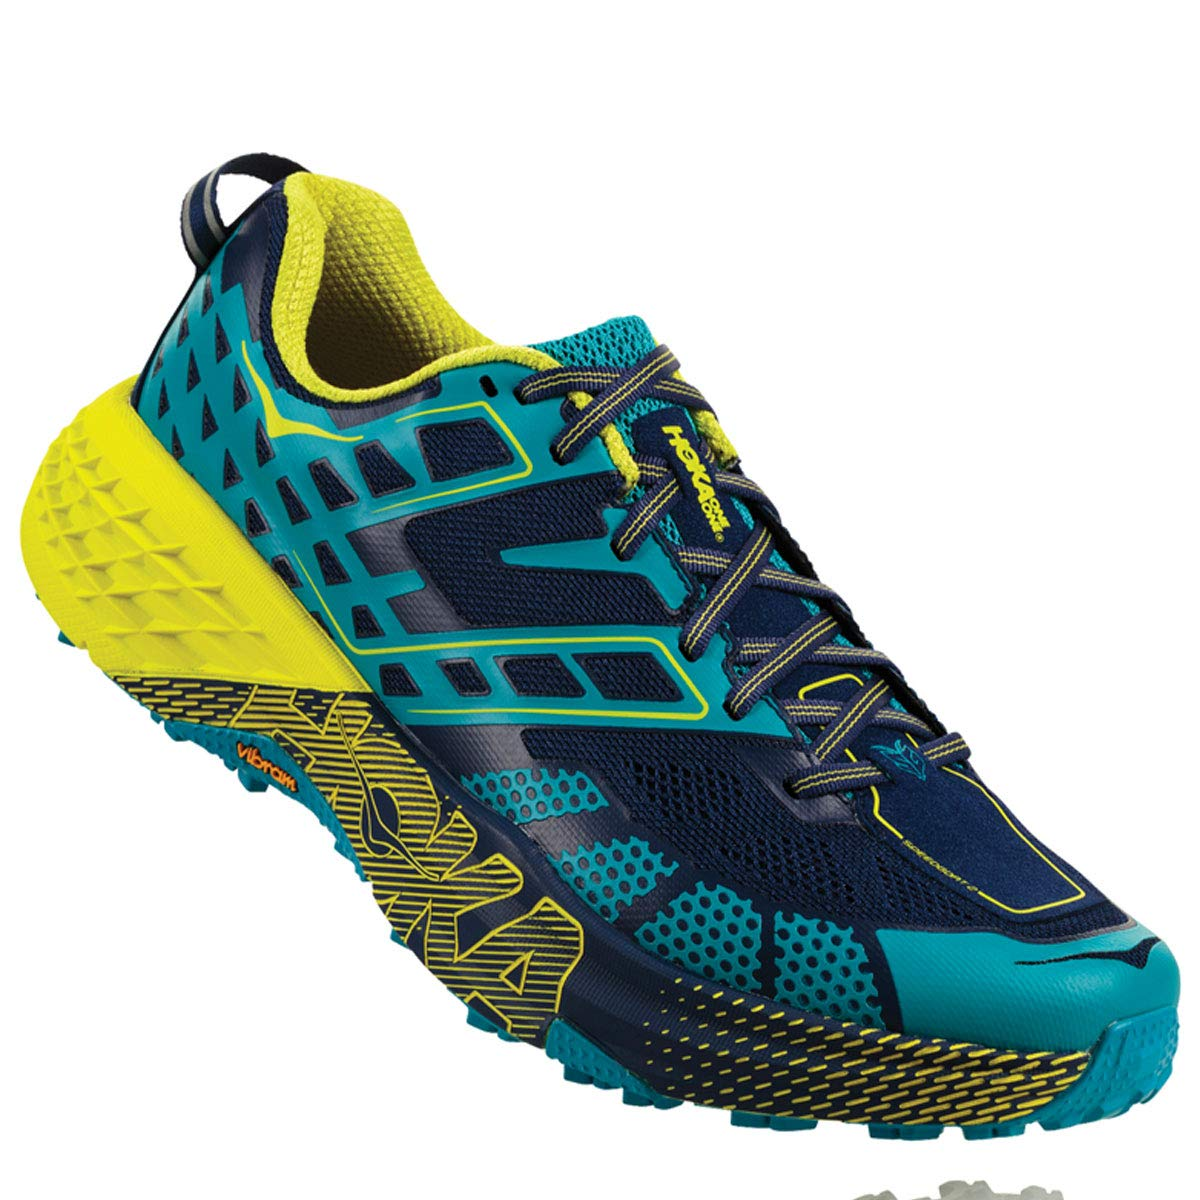 TALLA 12 US. Hoka One One Hombre Speedgoat 2 Textile Synthetic Entrenadores